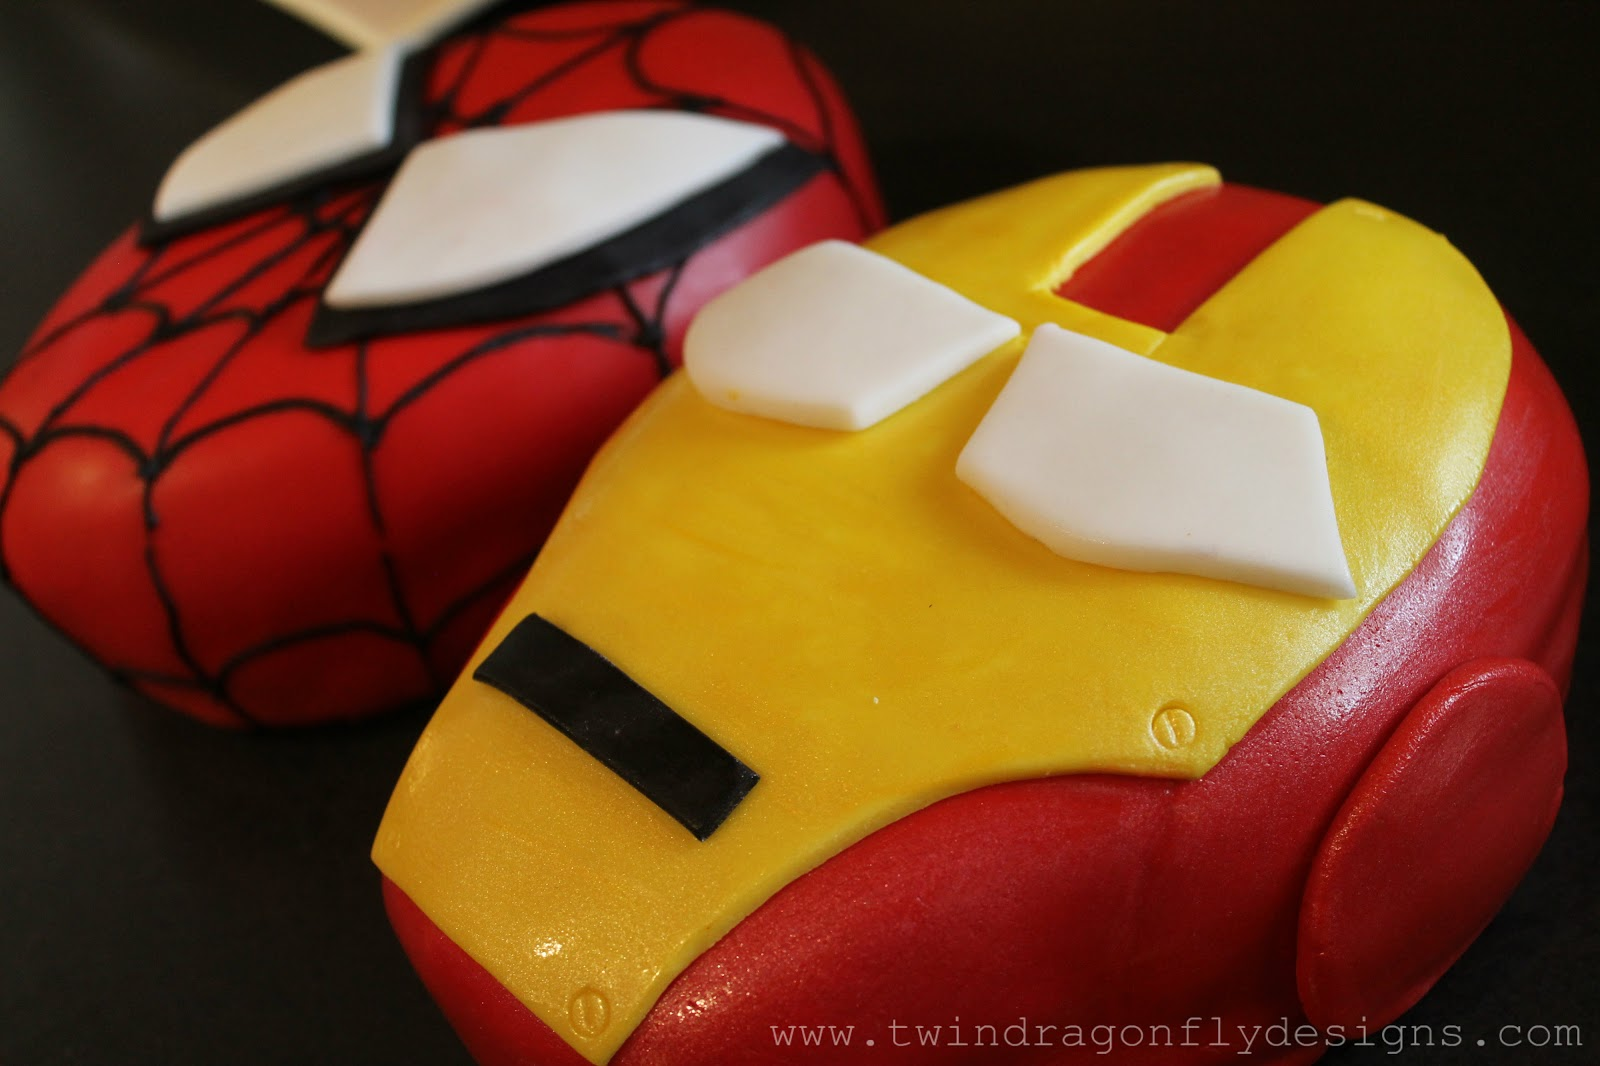 Superhero 5th Birthday Party Dragonfly Designs